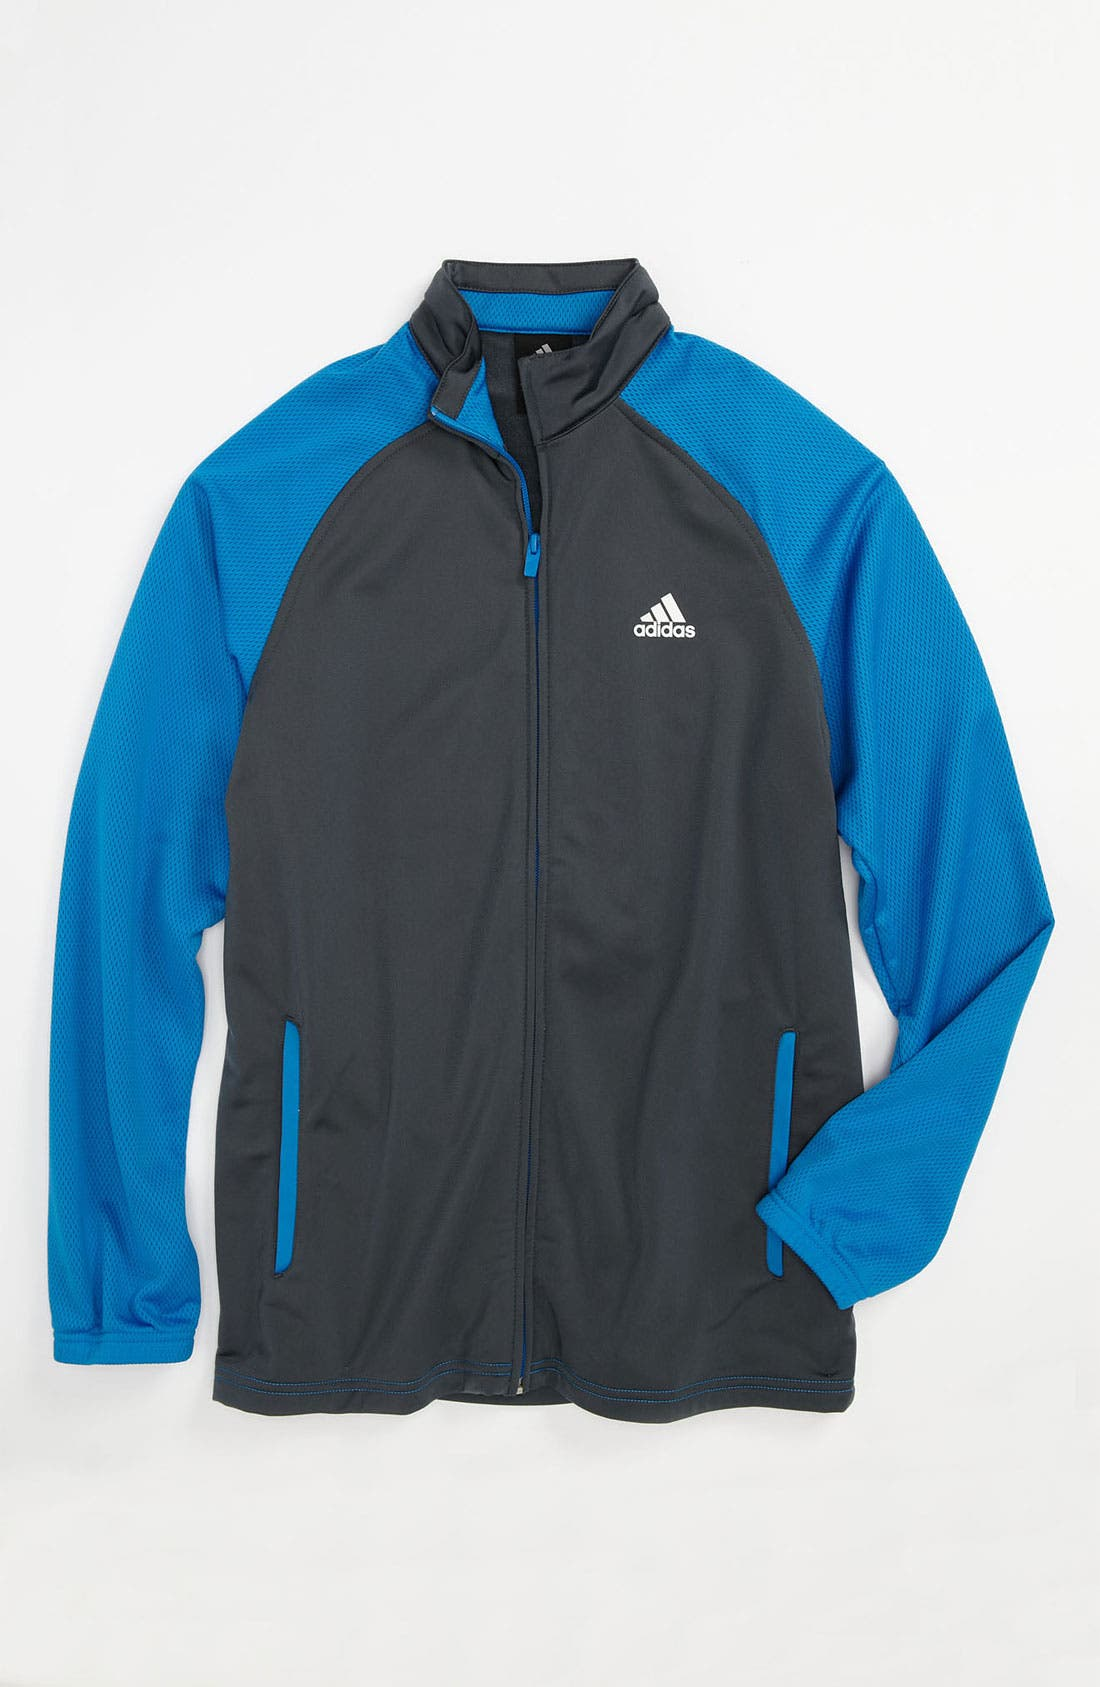 Alternate Image 1 Selected - adidas 'Pro Model' Jacket (Big Boys)